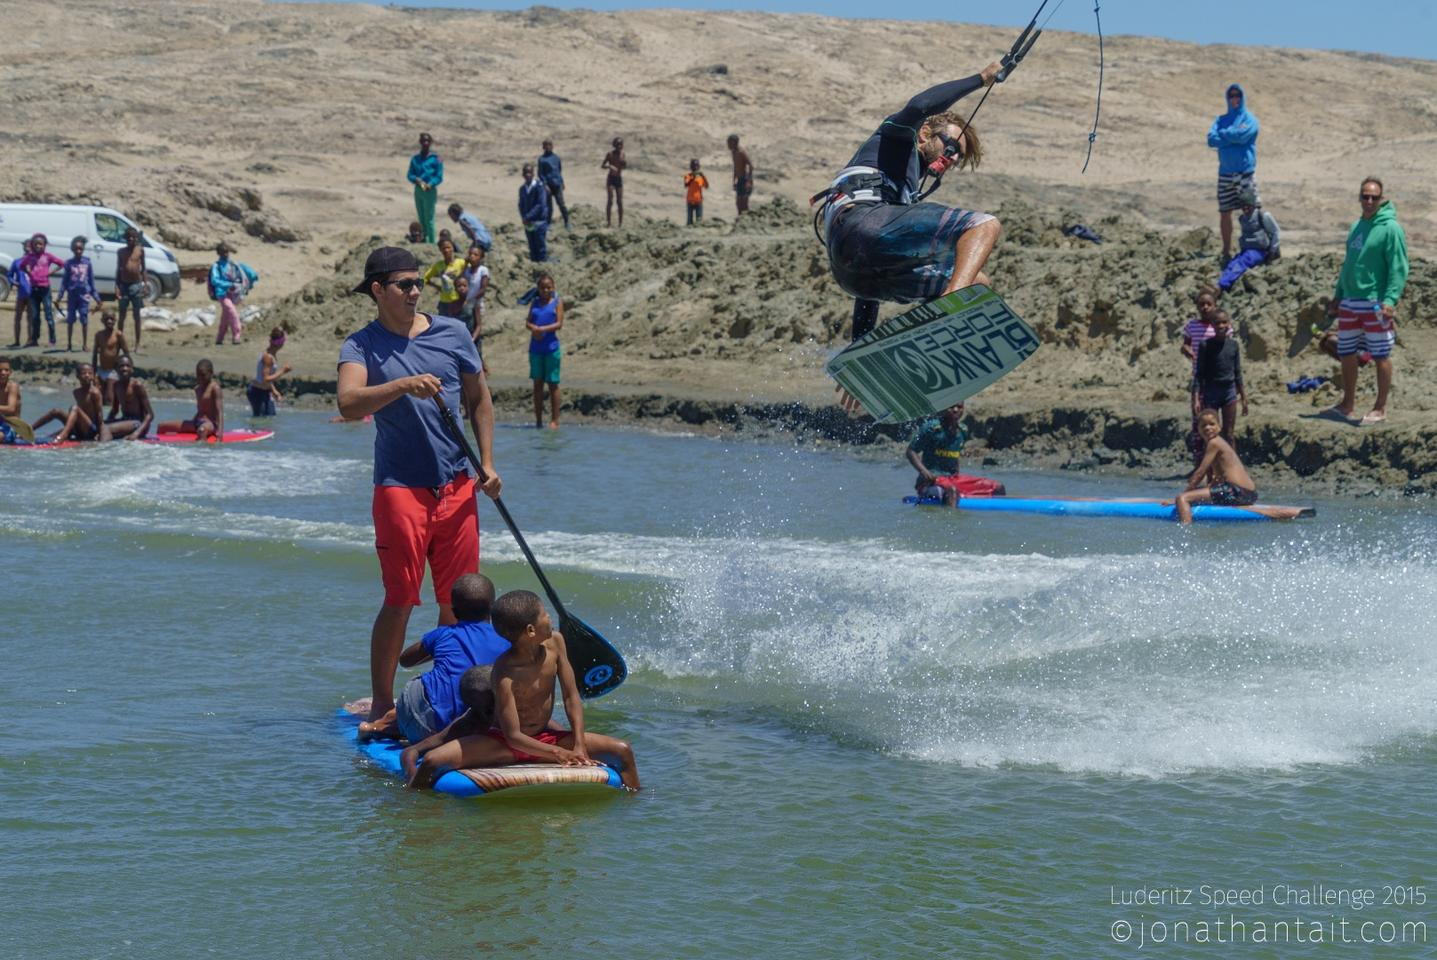 The Lüderitz Speed Challenge is all kinds of fun for attendees